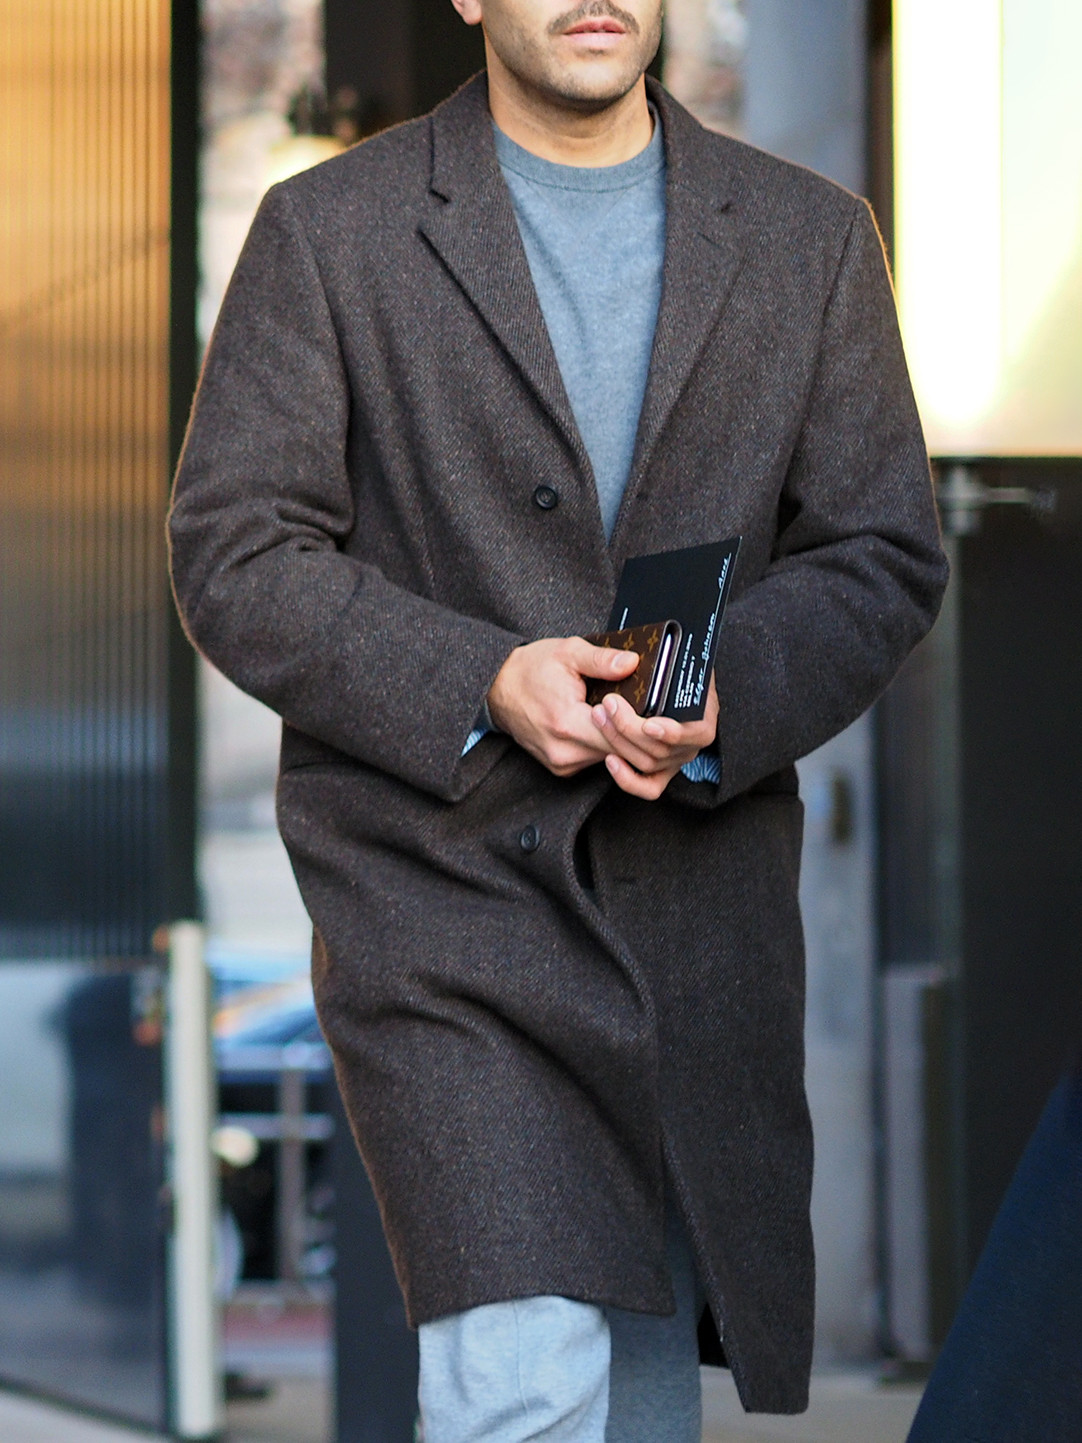 Men's outfit idea for 2021 with grey single-breasted overcoat, blue plain crew neck knitted sweater, light blue jeans, neutral chelsea boots. Suitable for fall and winter.